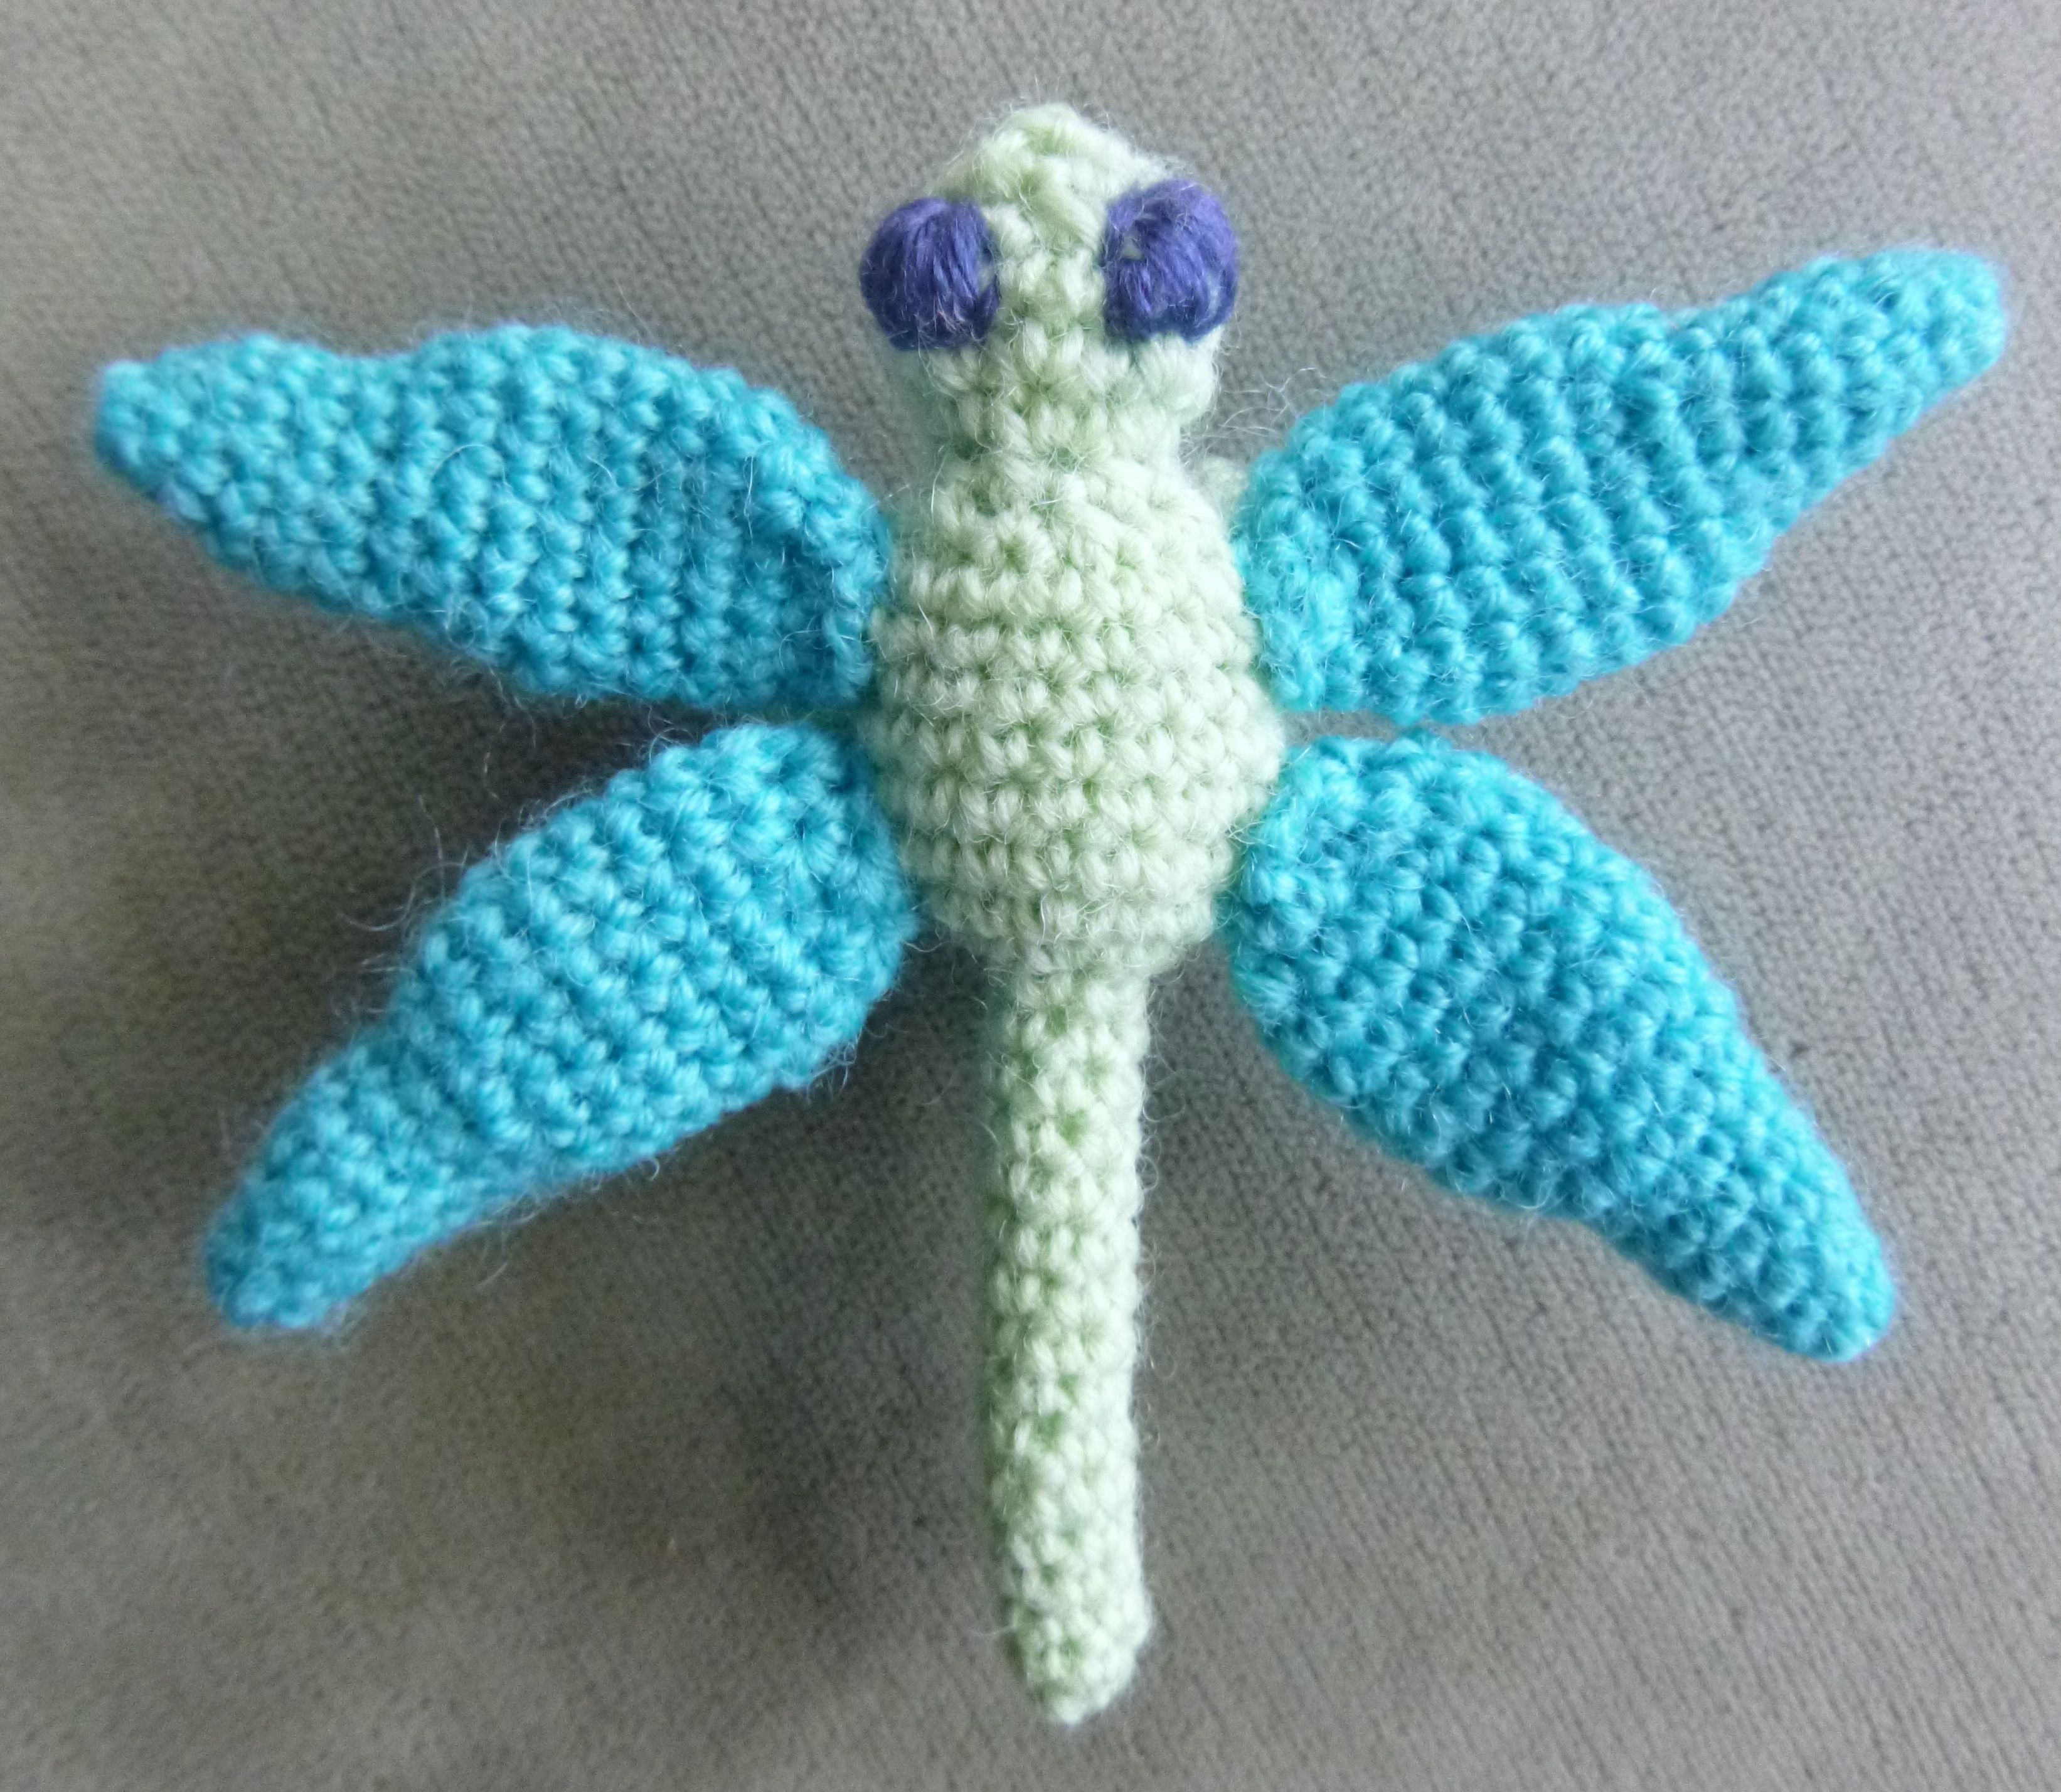 Dragonfly Crochet Pattern Magnificent Design Ideas